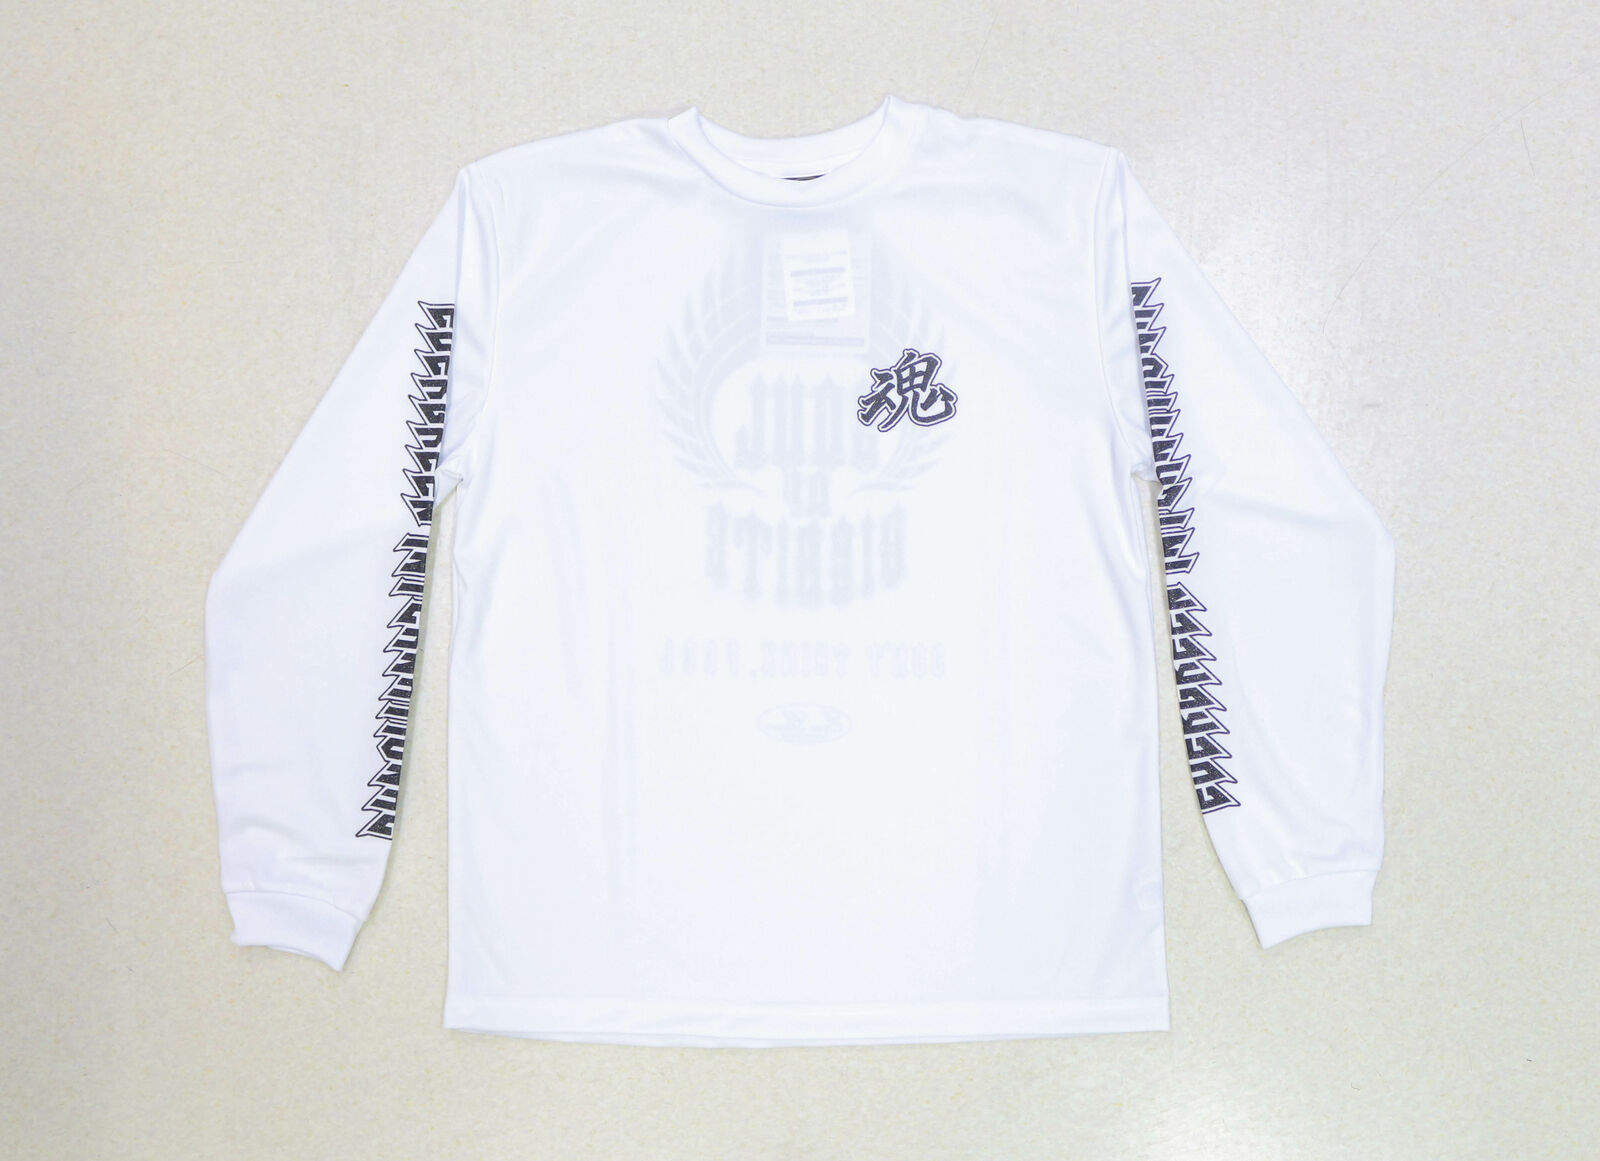 Evergreen T-Shirt Dry Fit Long  Sleeve Metal Soul A Type Size M White (7526)  good reputation